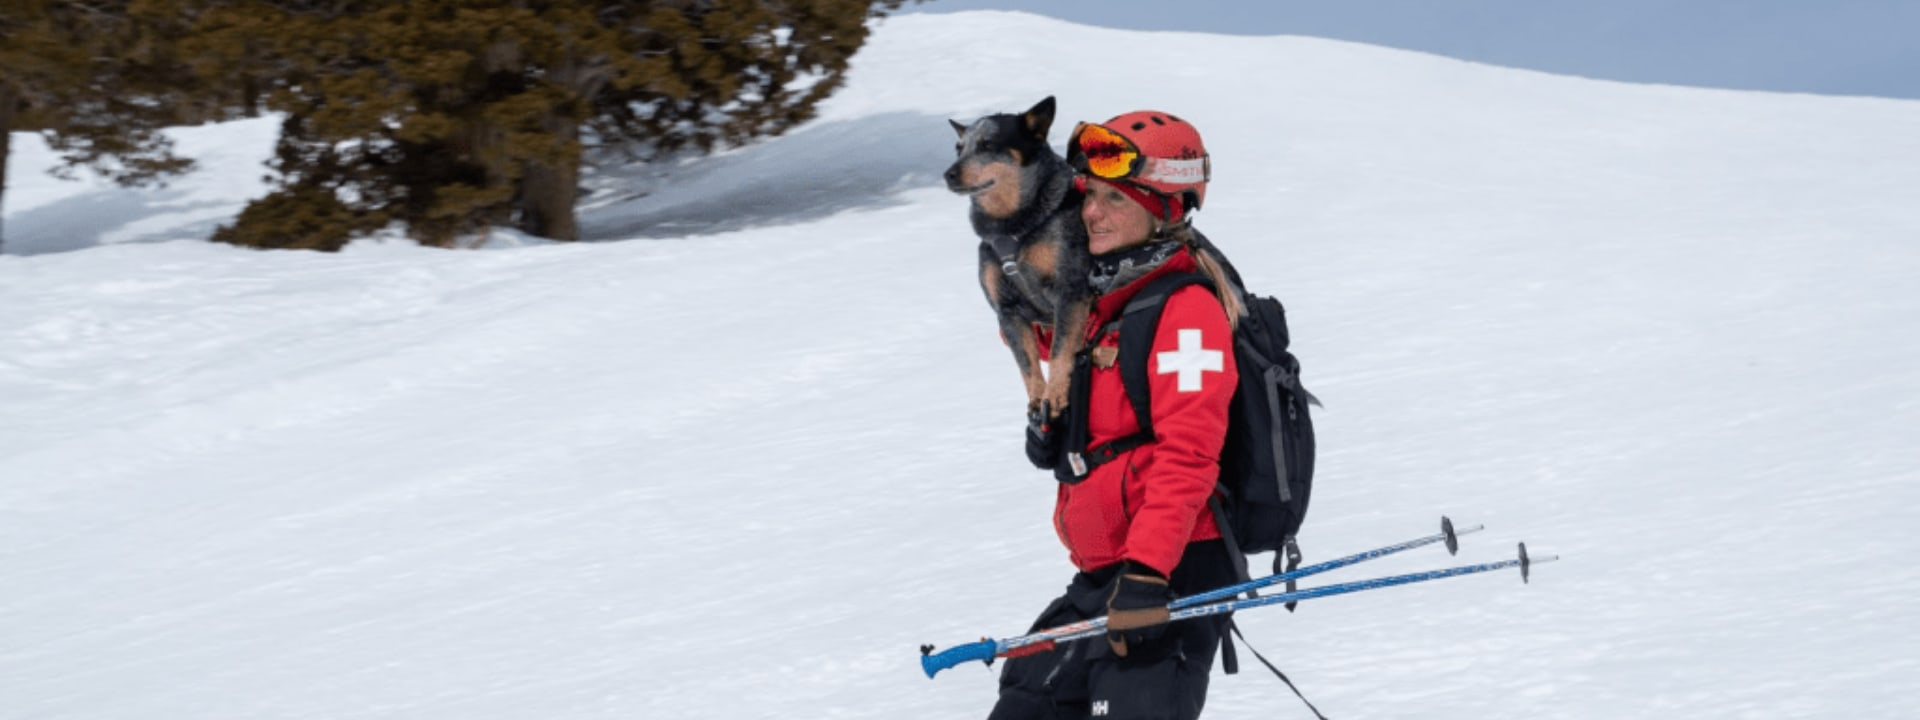 Avalanche Rescue dog with handler skiing downhill